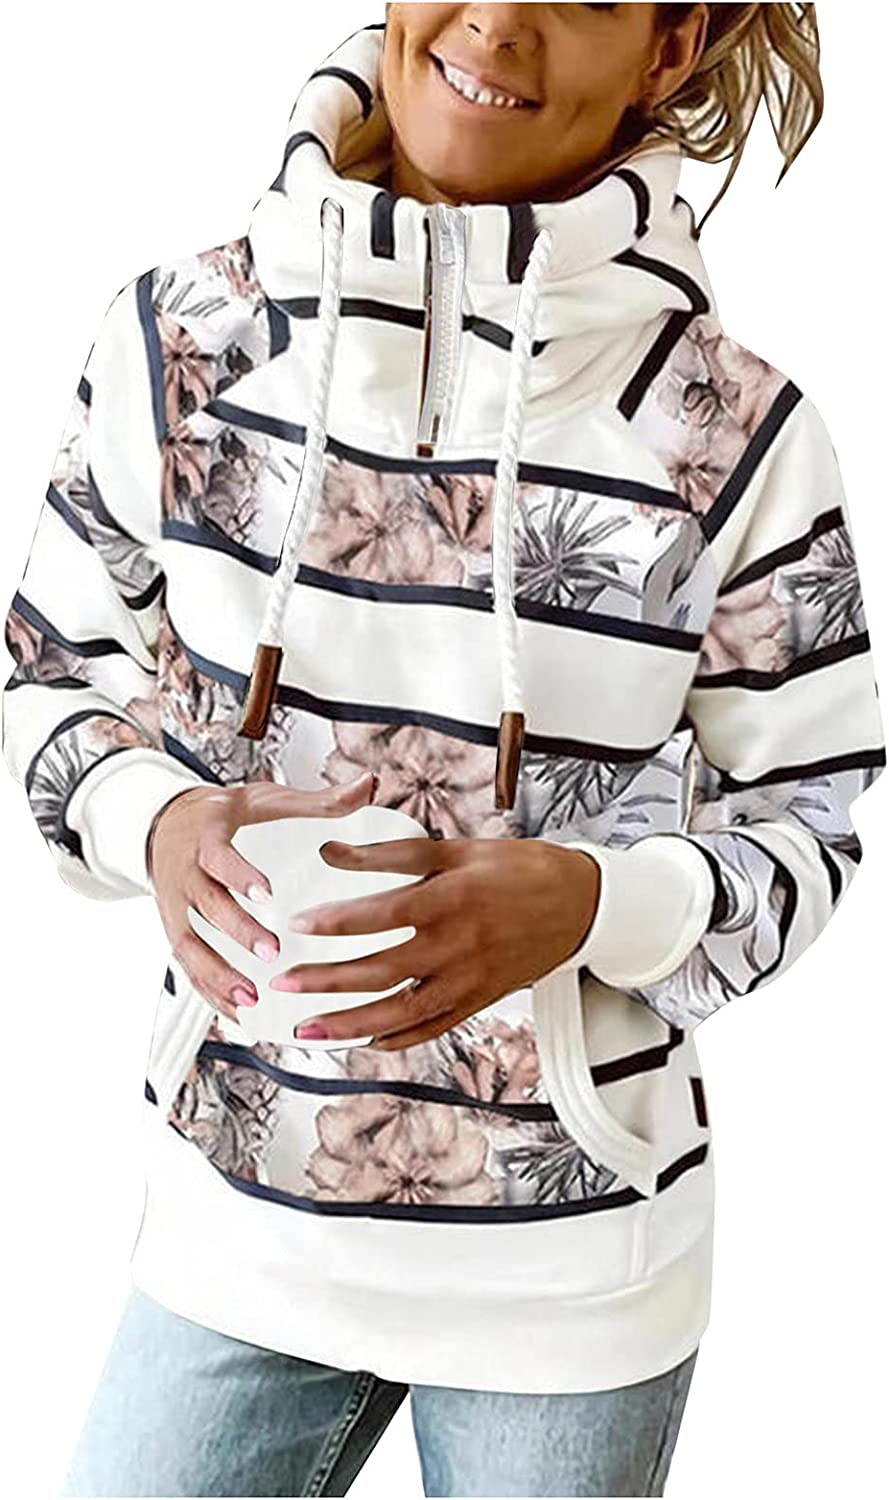 BOIYI Women's Drawstring Turtle Neck Winter Splice Hoodie with Pockets at The Sides Long-Sleeved Corset Sweatshirt